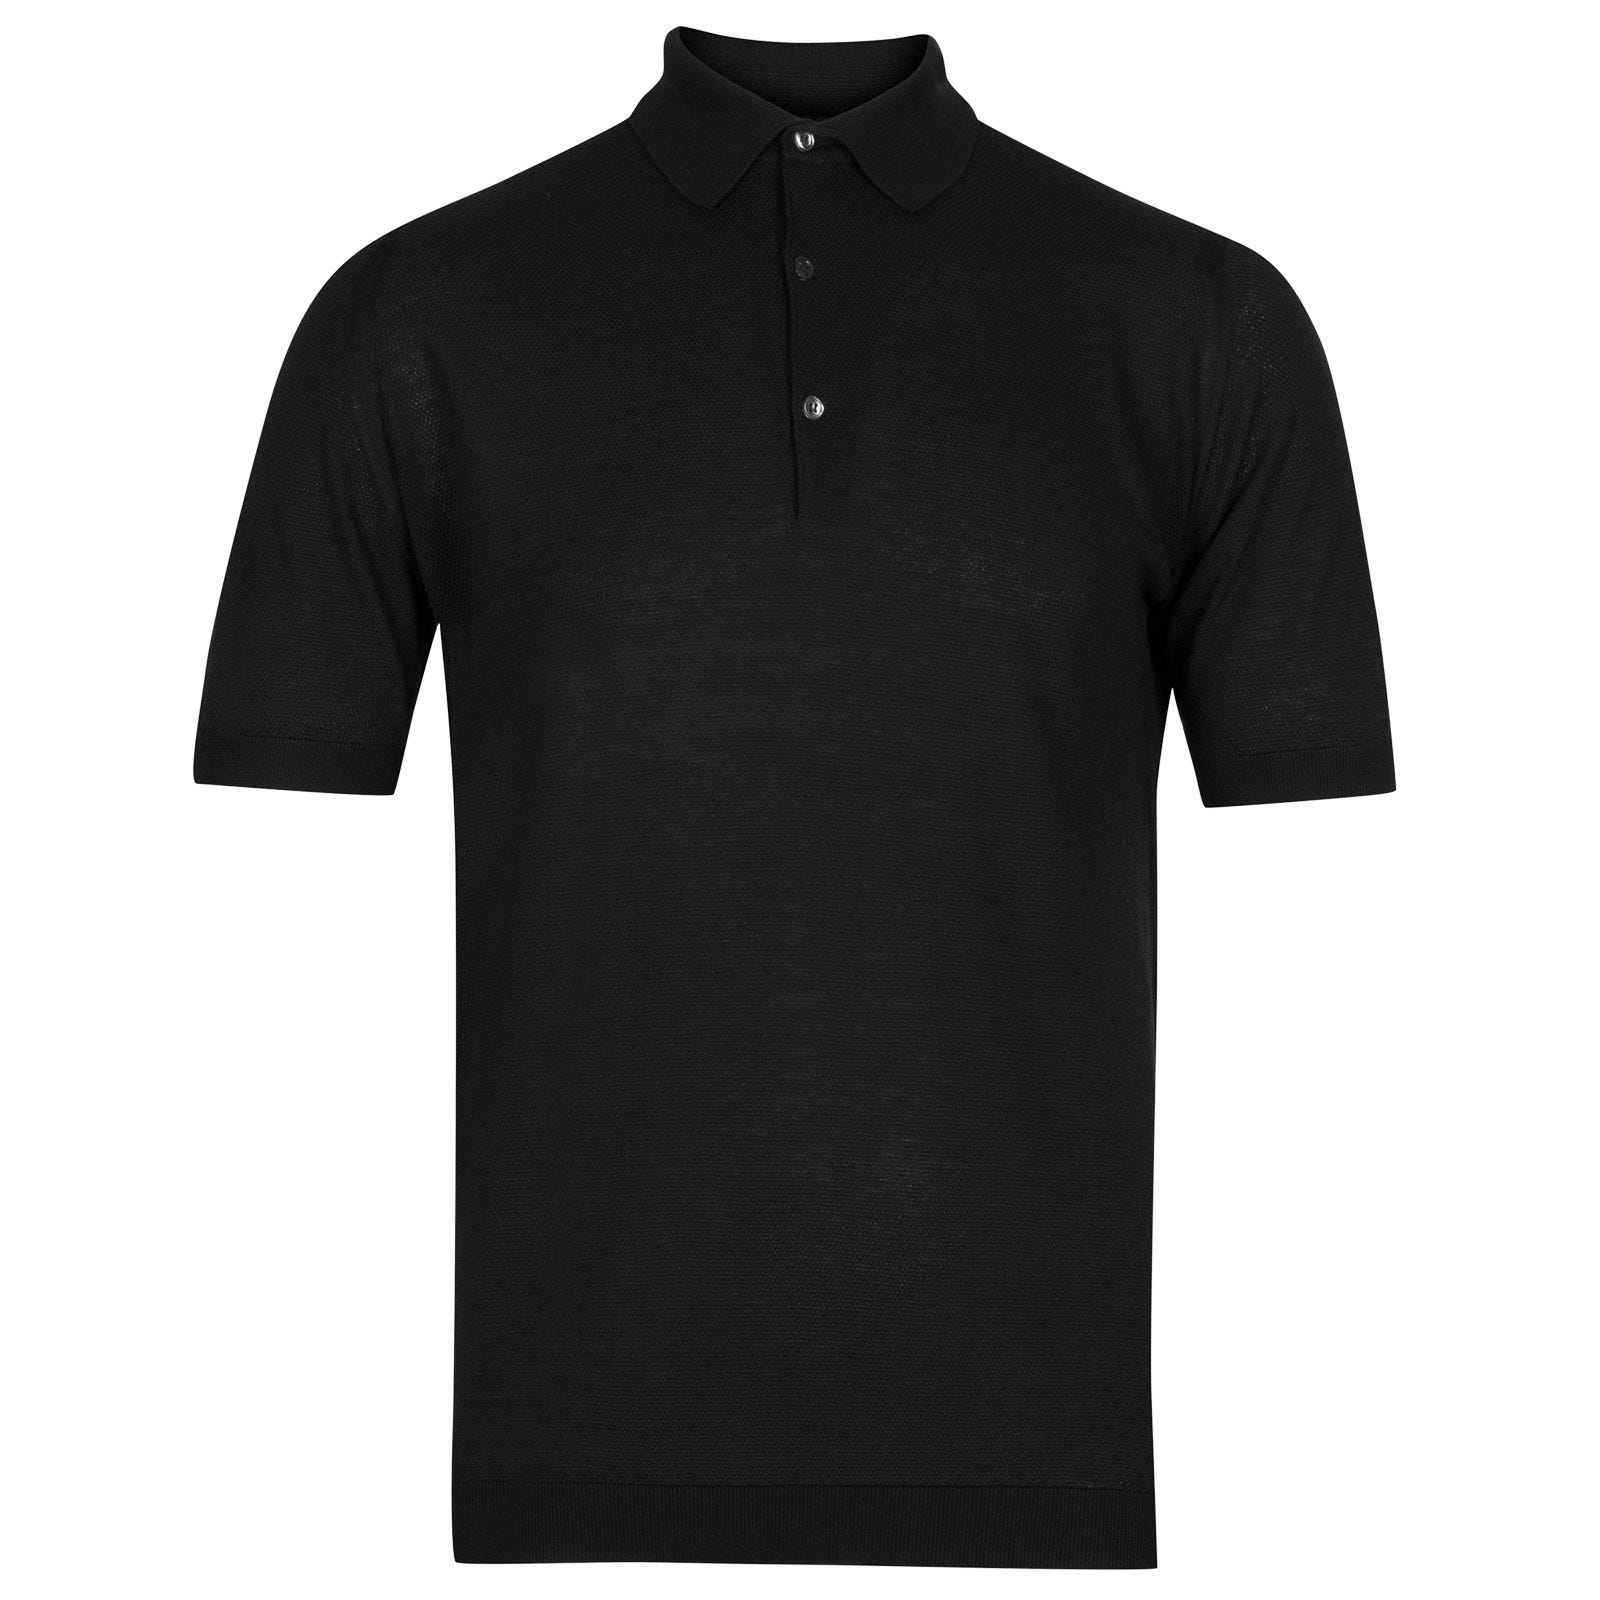 John Smedley roth Sea Island Cotton Shirt in Black-M